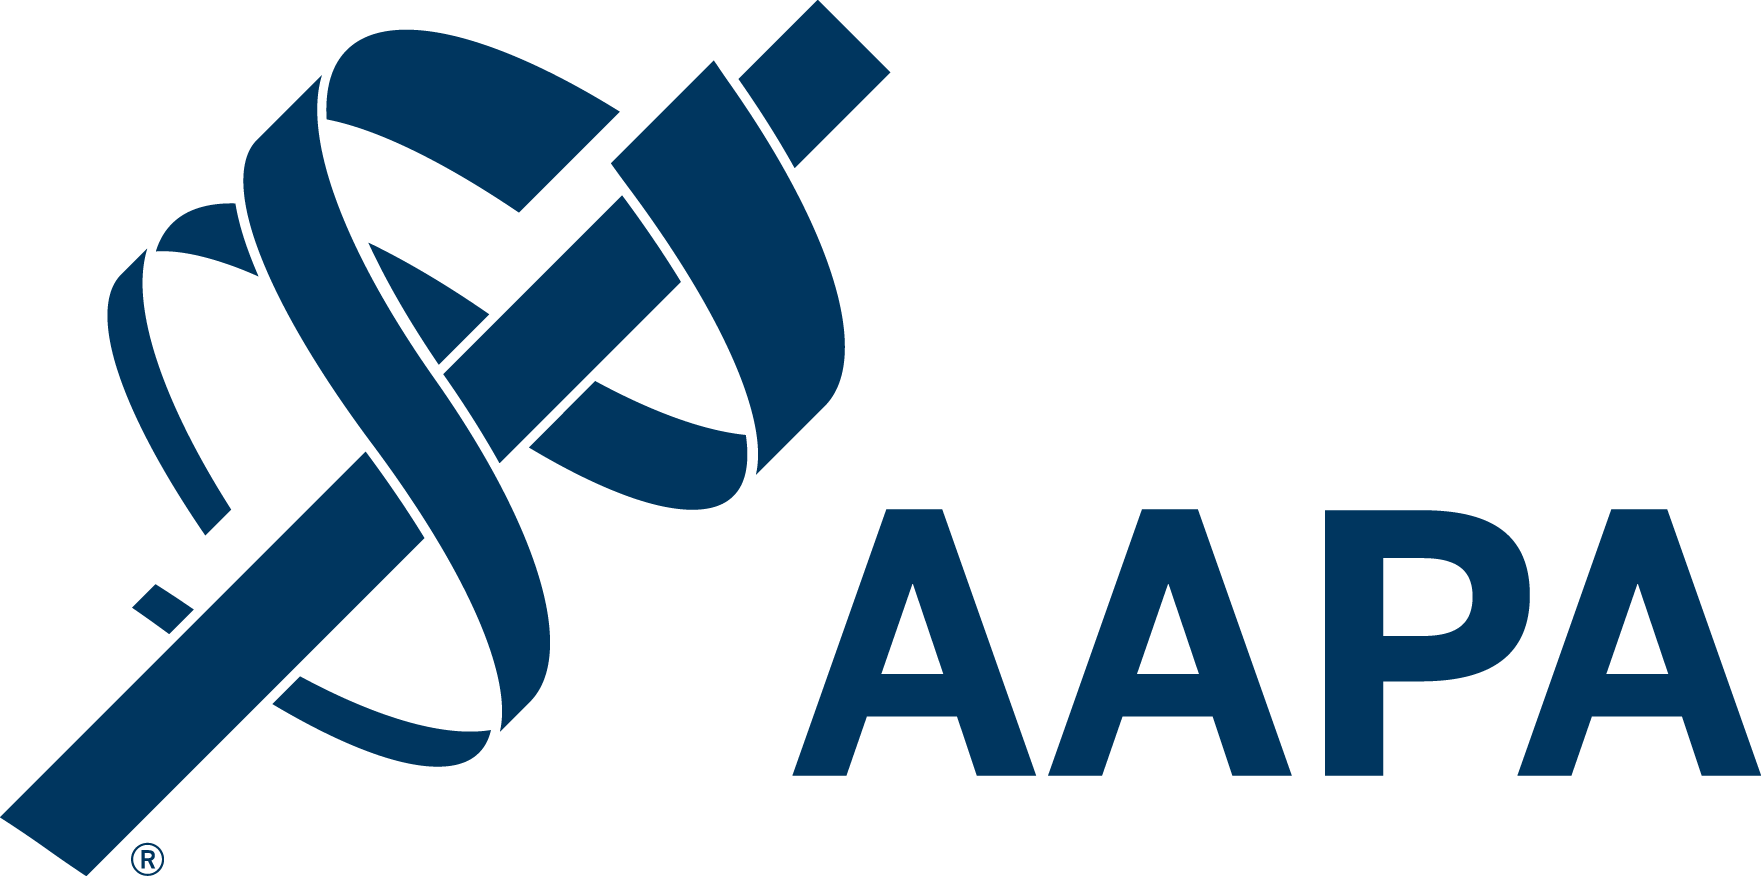 This image is the AAPA logo.